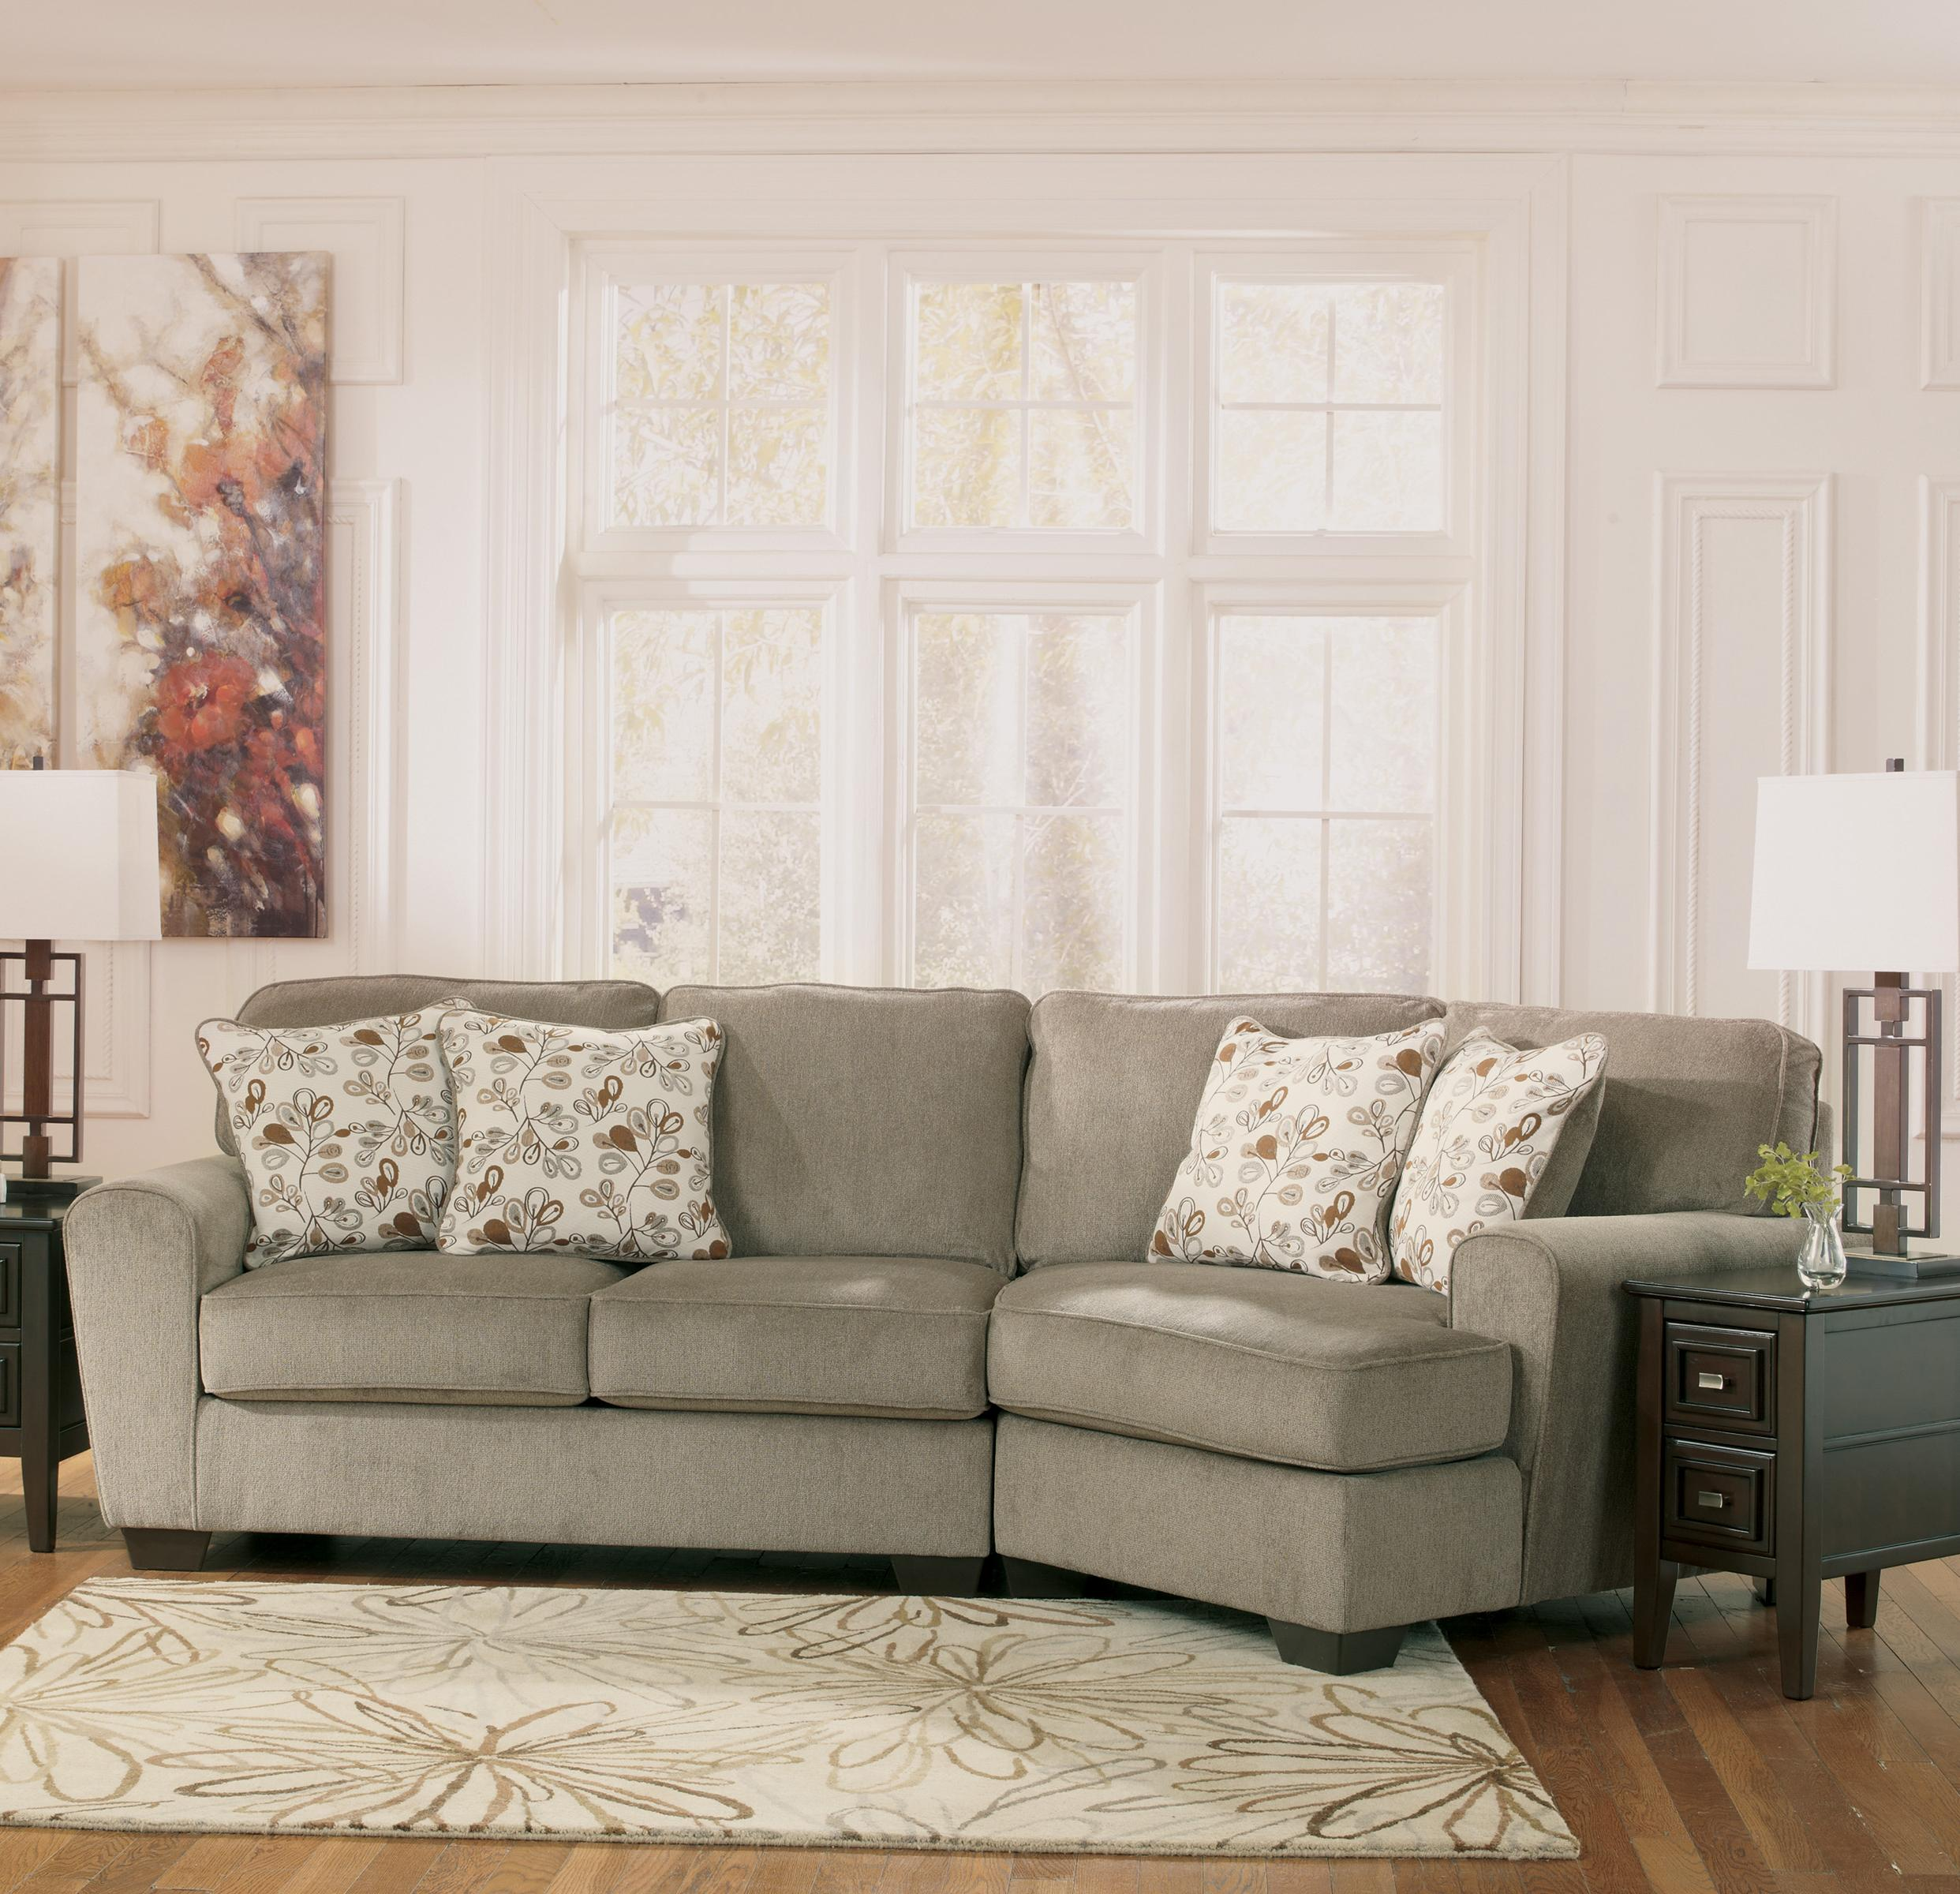 Ashleys Furiture: Patina 2-Piece Sectional With Right Cuddler